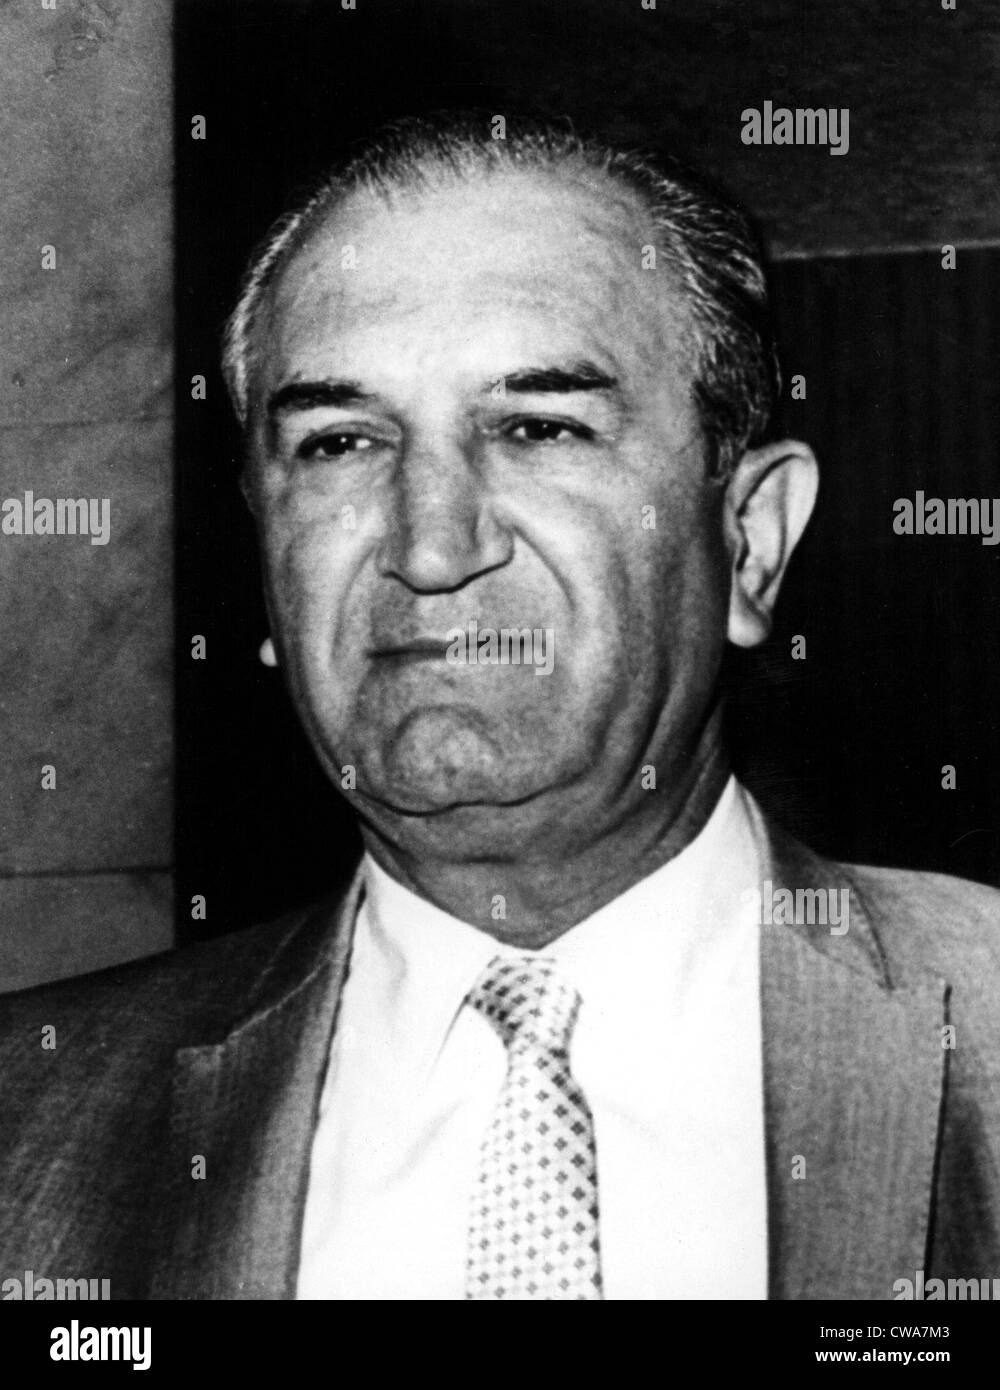 Joseph Bonanno, mobster, in the early 1970s.. Courtesy: CSU Archives / Everett Collection - Stock Image